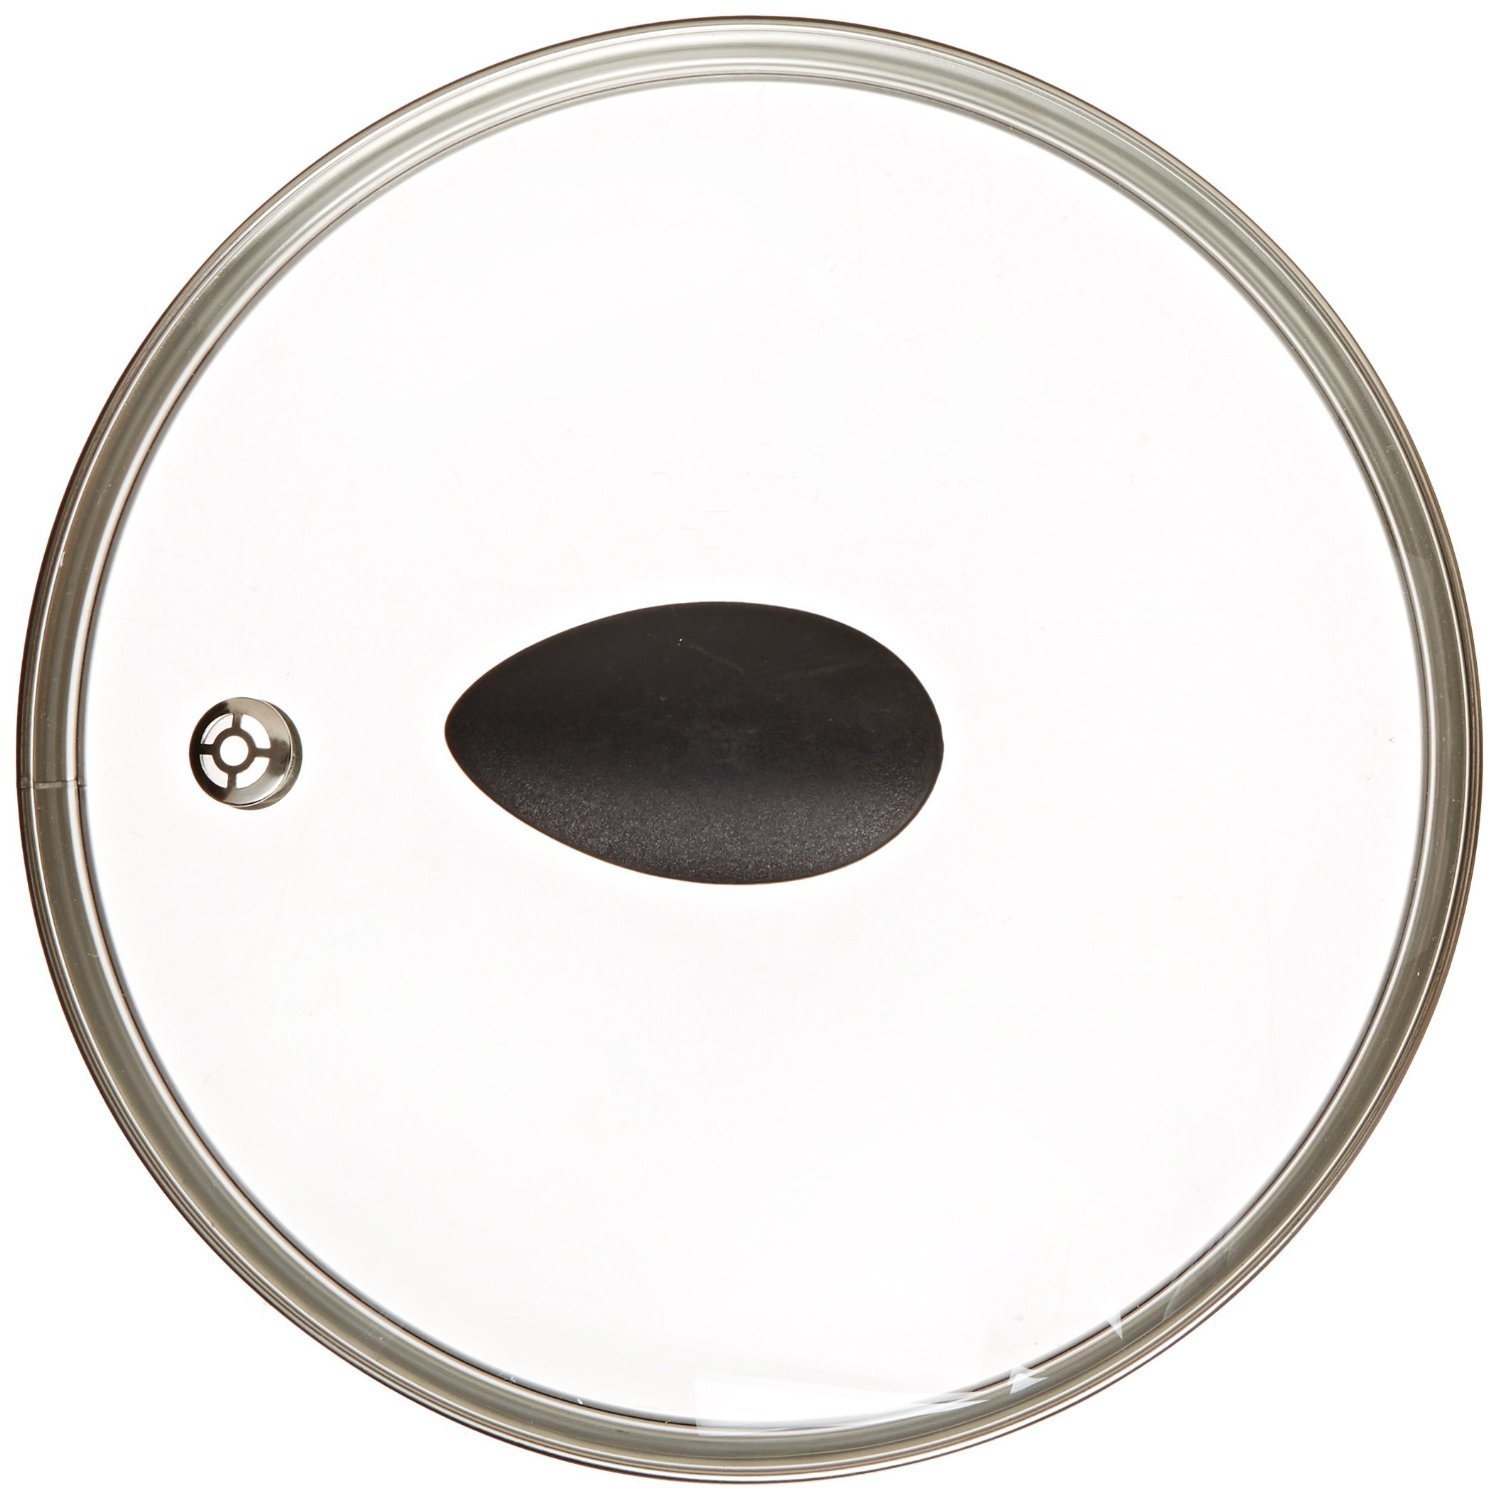 10'' Earth Frying Pan Lid in Tempered Glass, by Ozeri